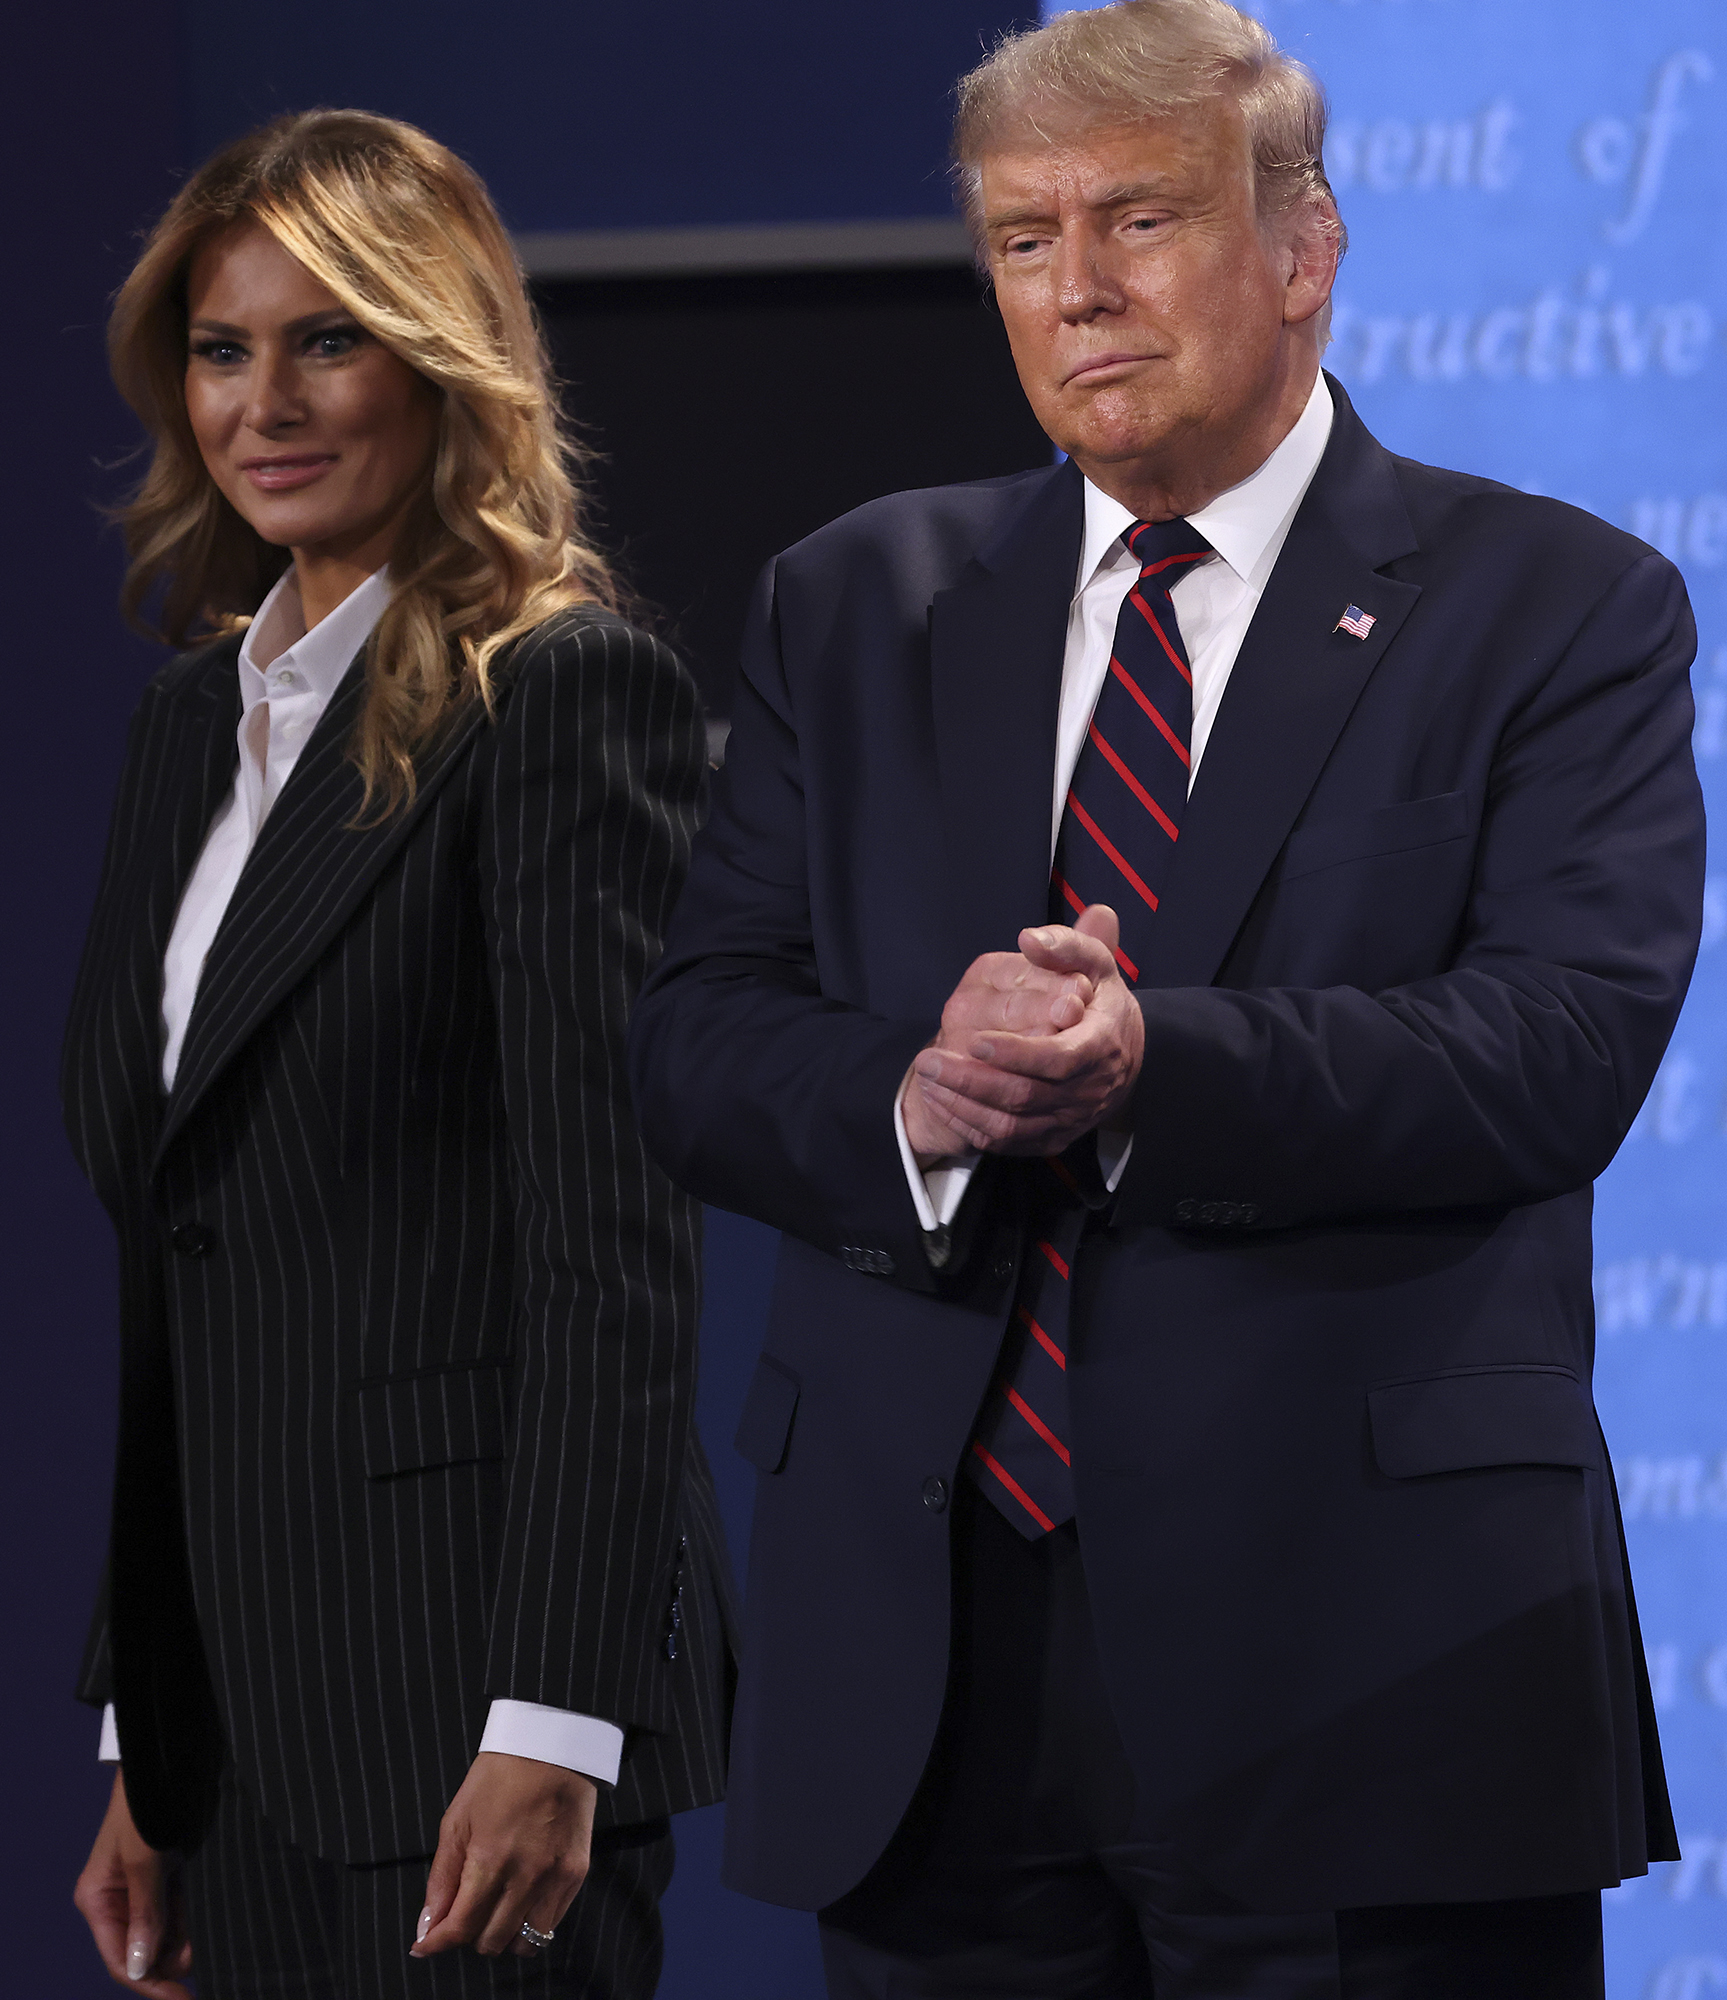 """President Trump and First Lady Melania announced their positive test results on Twitter, just hours after it was confirmed the president's adviserHope Hicks had contracted the contagious virus.                             """"Tonight, @FLOTUS and I tested positive for COVID-19,"""" President Trump tweetedon Oct. 2. """"We will begin our quarantine and recovery process immediately. We will get through this TOGETHER!""""                             Mrs. Trump tweeted minutes laterthat she and her husband were """"feeling good.""""                             """"As too many Americans have done this year, @potus & I are quarantining at home after testing positive for COVID-19,"""" she wrote. """"We are feeling good & I have postponed all upcoming engagements. Please be sure you are staying safe & we will all get through this together.""""                             After his announcement, Trump was hospitalized for three days at the Walter Reed National Military Medical Center and has since returned to the White House.                             On Oct. 5, White House physician Dr. Sean Conley said that Trump would be able to continue his treatment from home at the White House.                             """"Though he may not be entirely out of the woods yet, the team and I agree that all our evaluations - and most importantly, his clinical status - support the president's safe return home,"""" Conley said.                             Instead of remaining in isolation, Trump made another outing over the weekend to wave at his supporters outside Walter Reed from his presidential motorcade - a move thatwas criticizedfor putting others at risk of contracting the virus.                             Just before leaving Walter Reed, Trump sent out a tweet promising to be back on the campaign trail """"soon.""""                             Since President Trump's positive diagnosis, at least half-a-dozen members of the administration (plus several non-officials who recently visited the White House and several journ"""